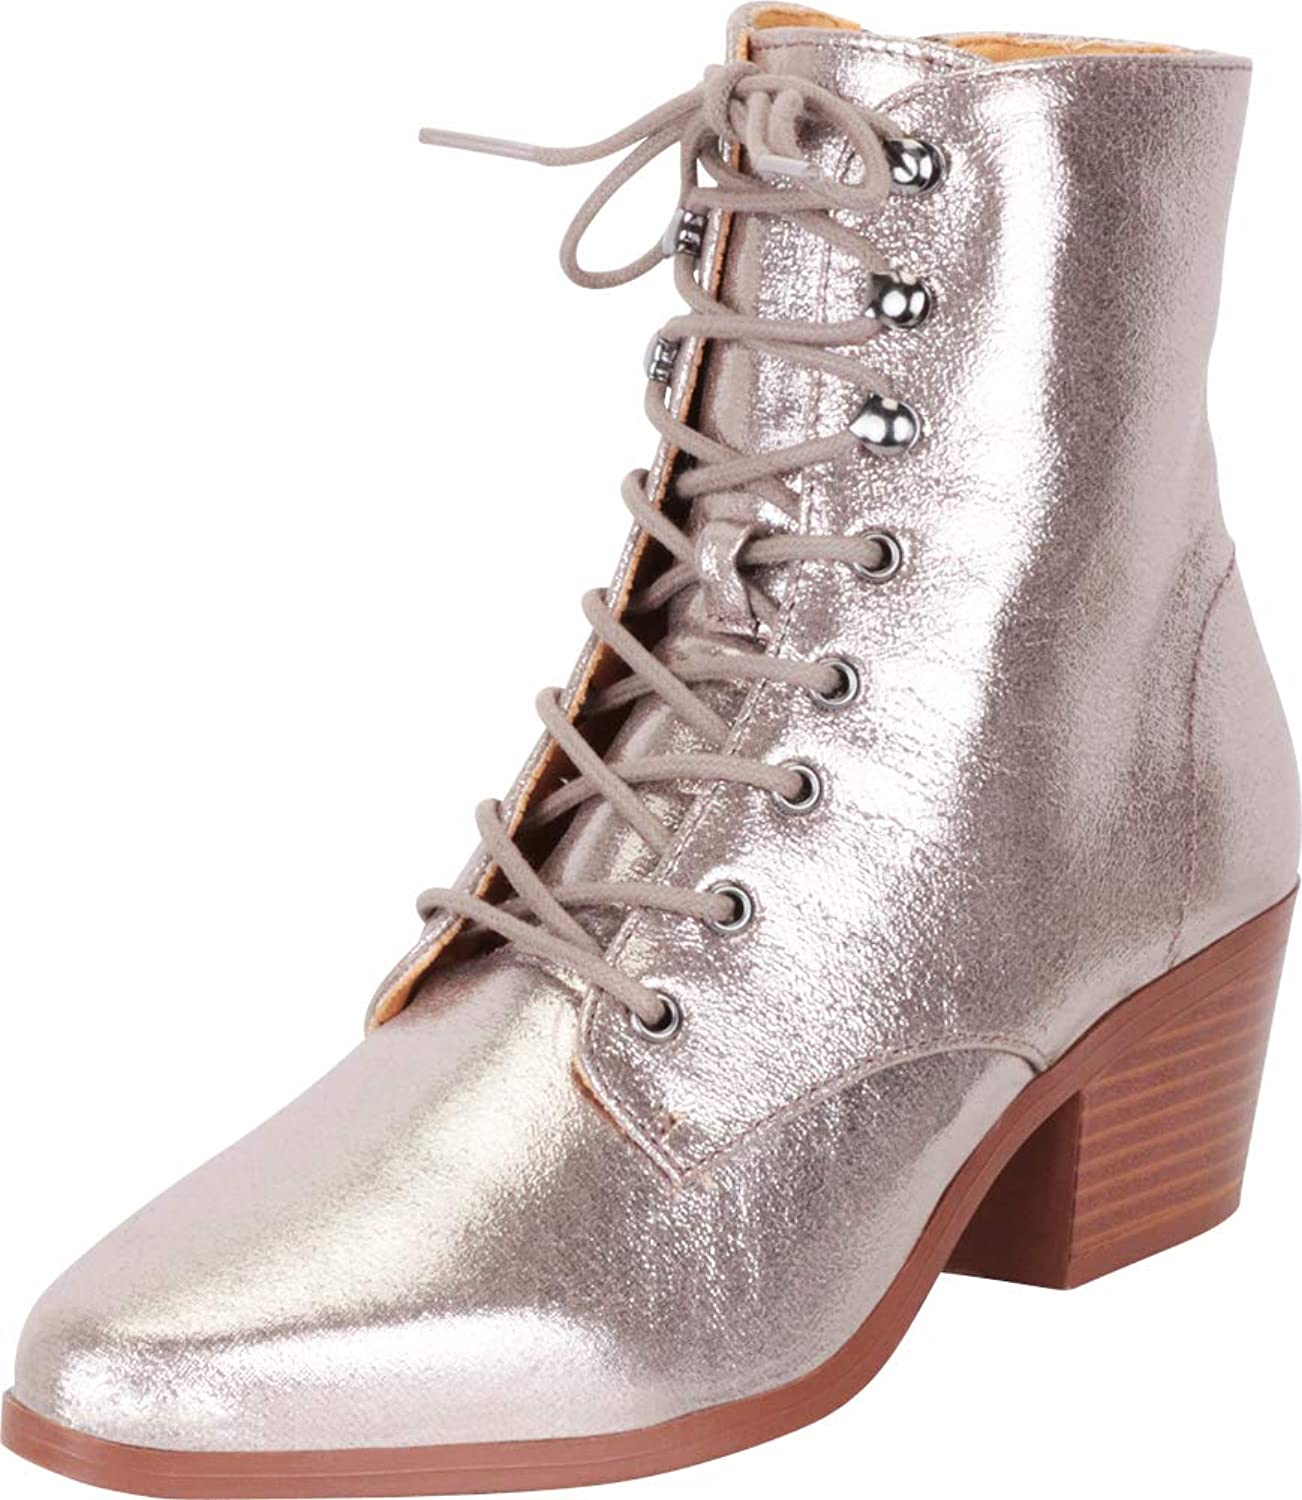 Cambridge Select Women's Pointed Toe Victorian Steampunk Lace-Up Block Heel Ankle Bootie